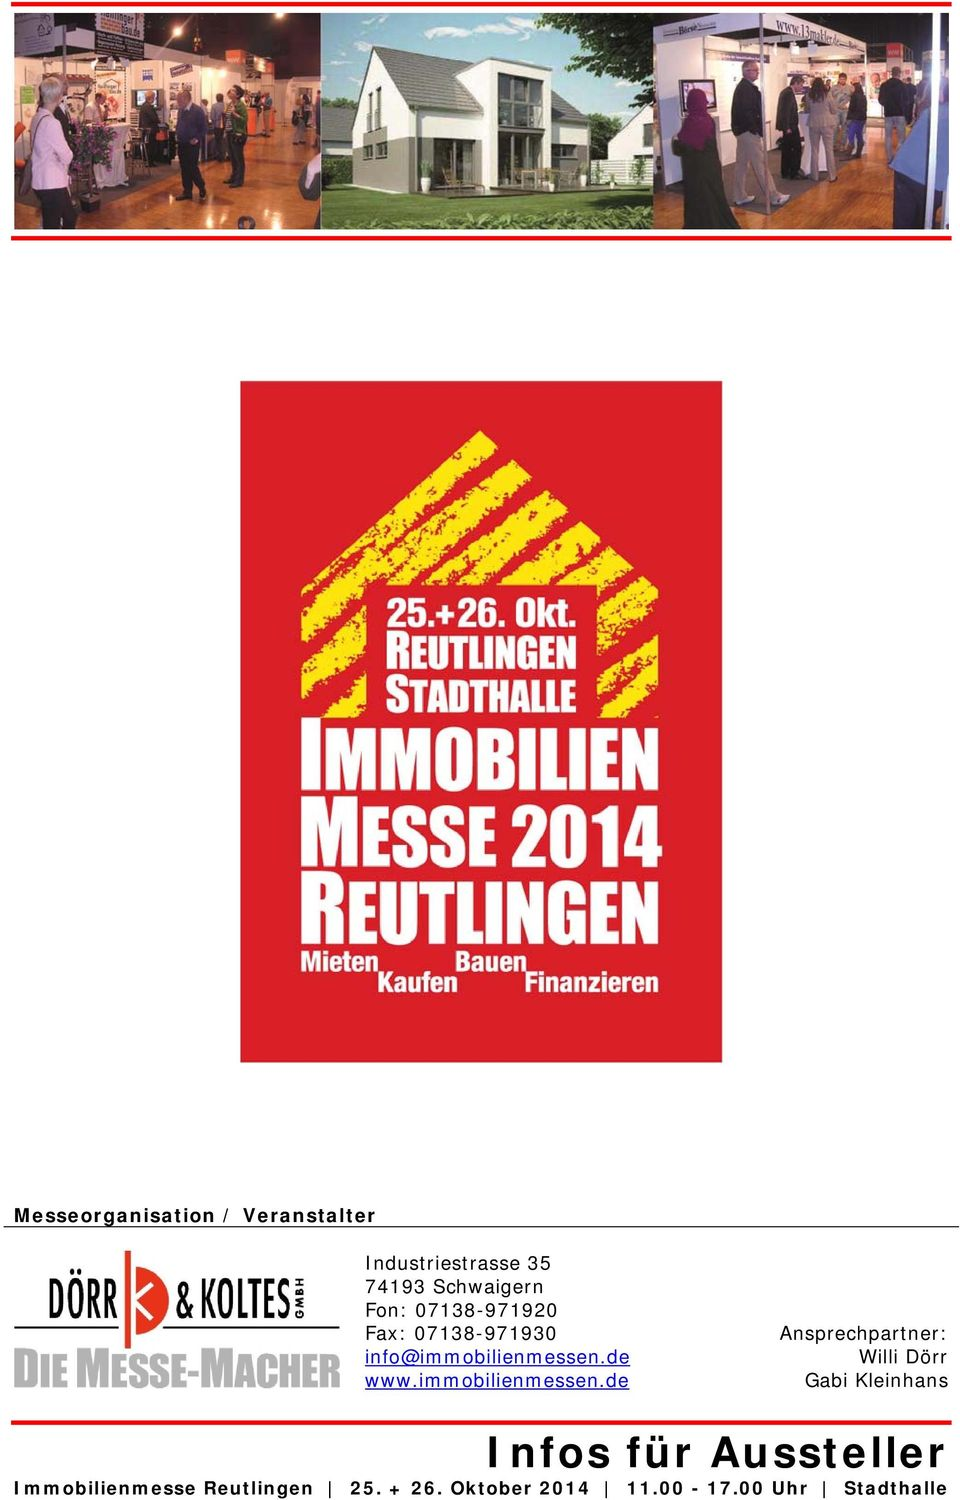 immobilienmessen.